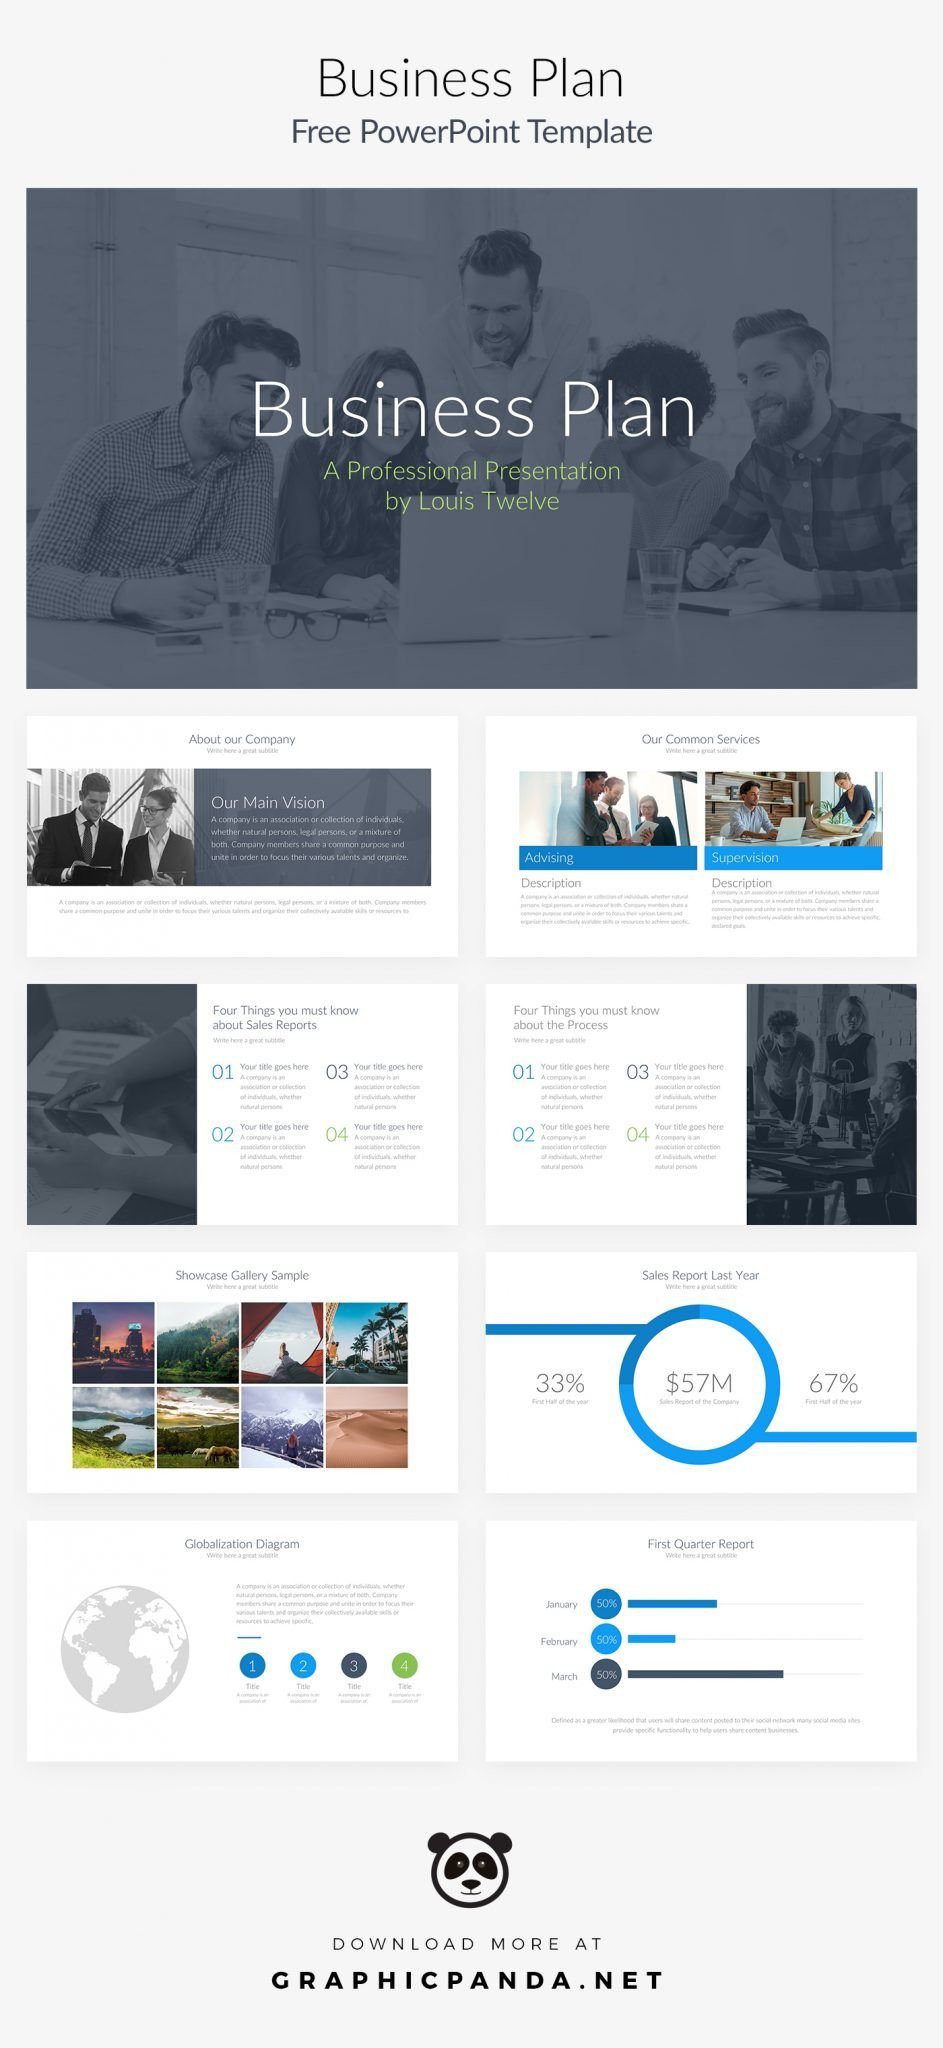 Business plan powerpoint template 10 free slides for business business plan powerpoint template 10 free slides for business proposal friedricerecipe Image collections